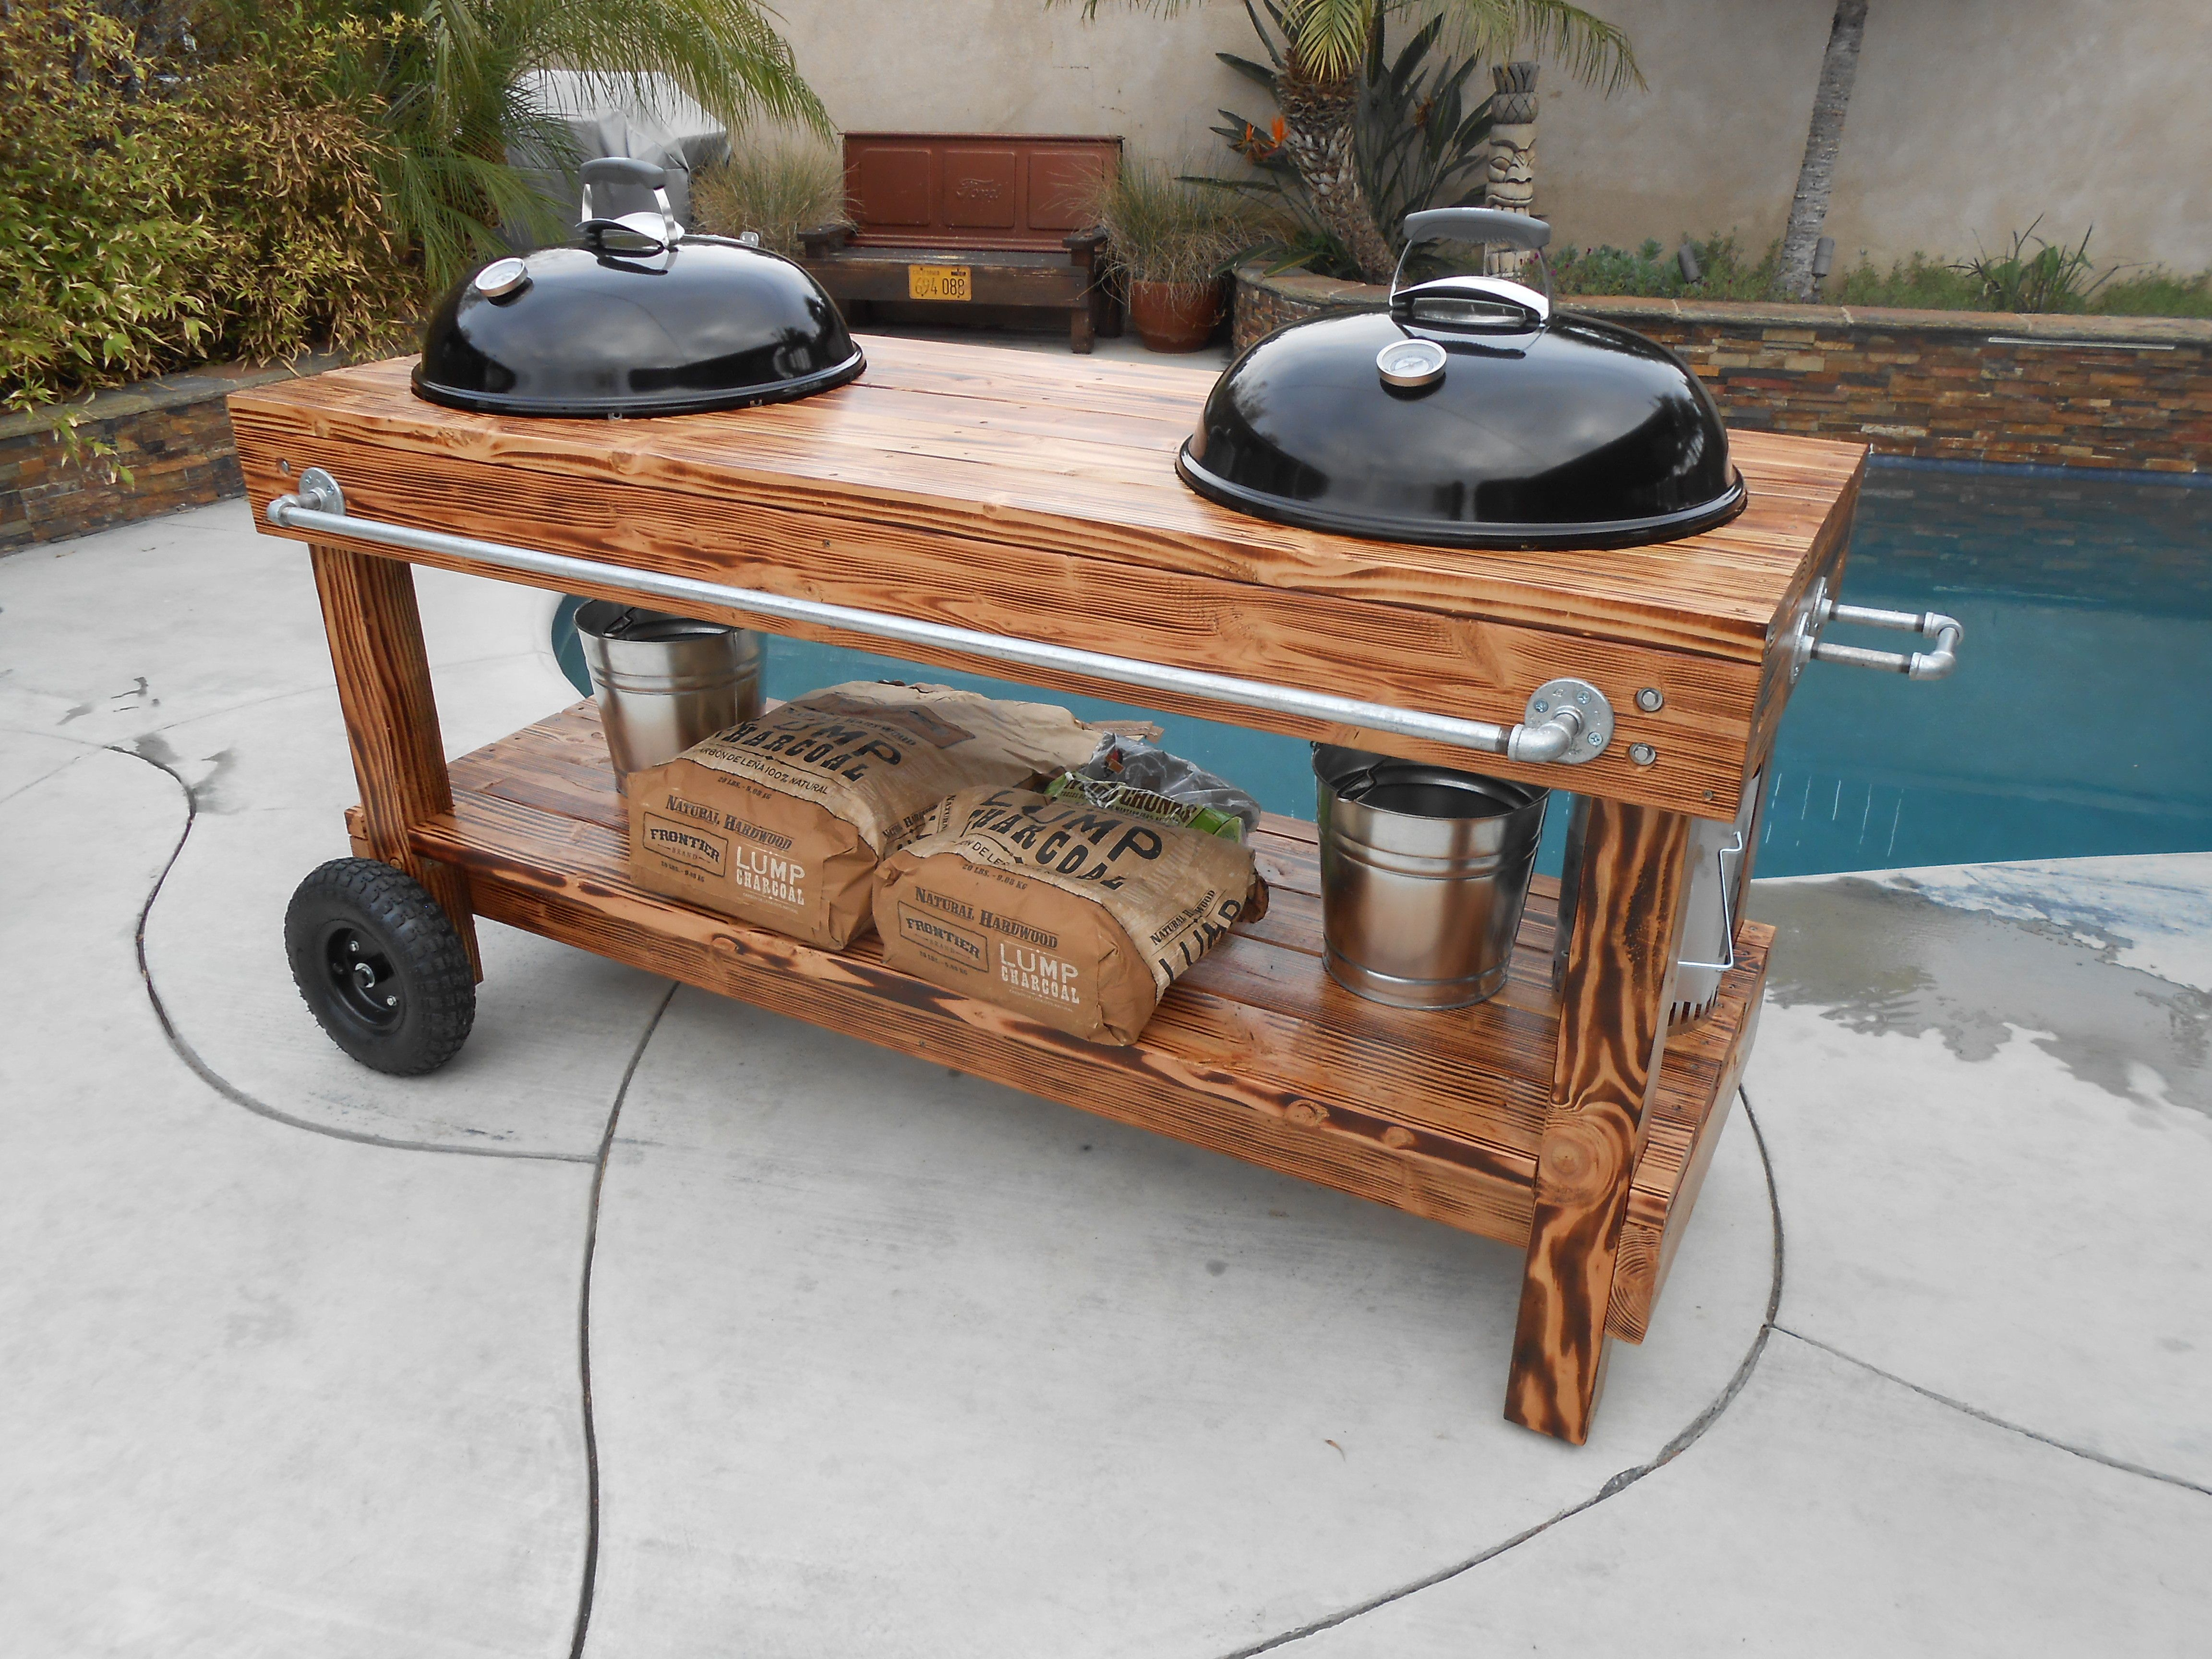 Awesome Outdoor Grilling Stations Has Efecbdcdef Home Decoratorist 179990 Grill Station Outdoor Kitchen Outdoor Grill Station